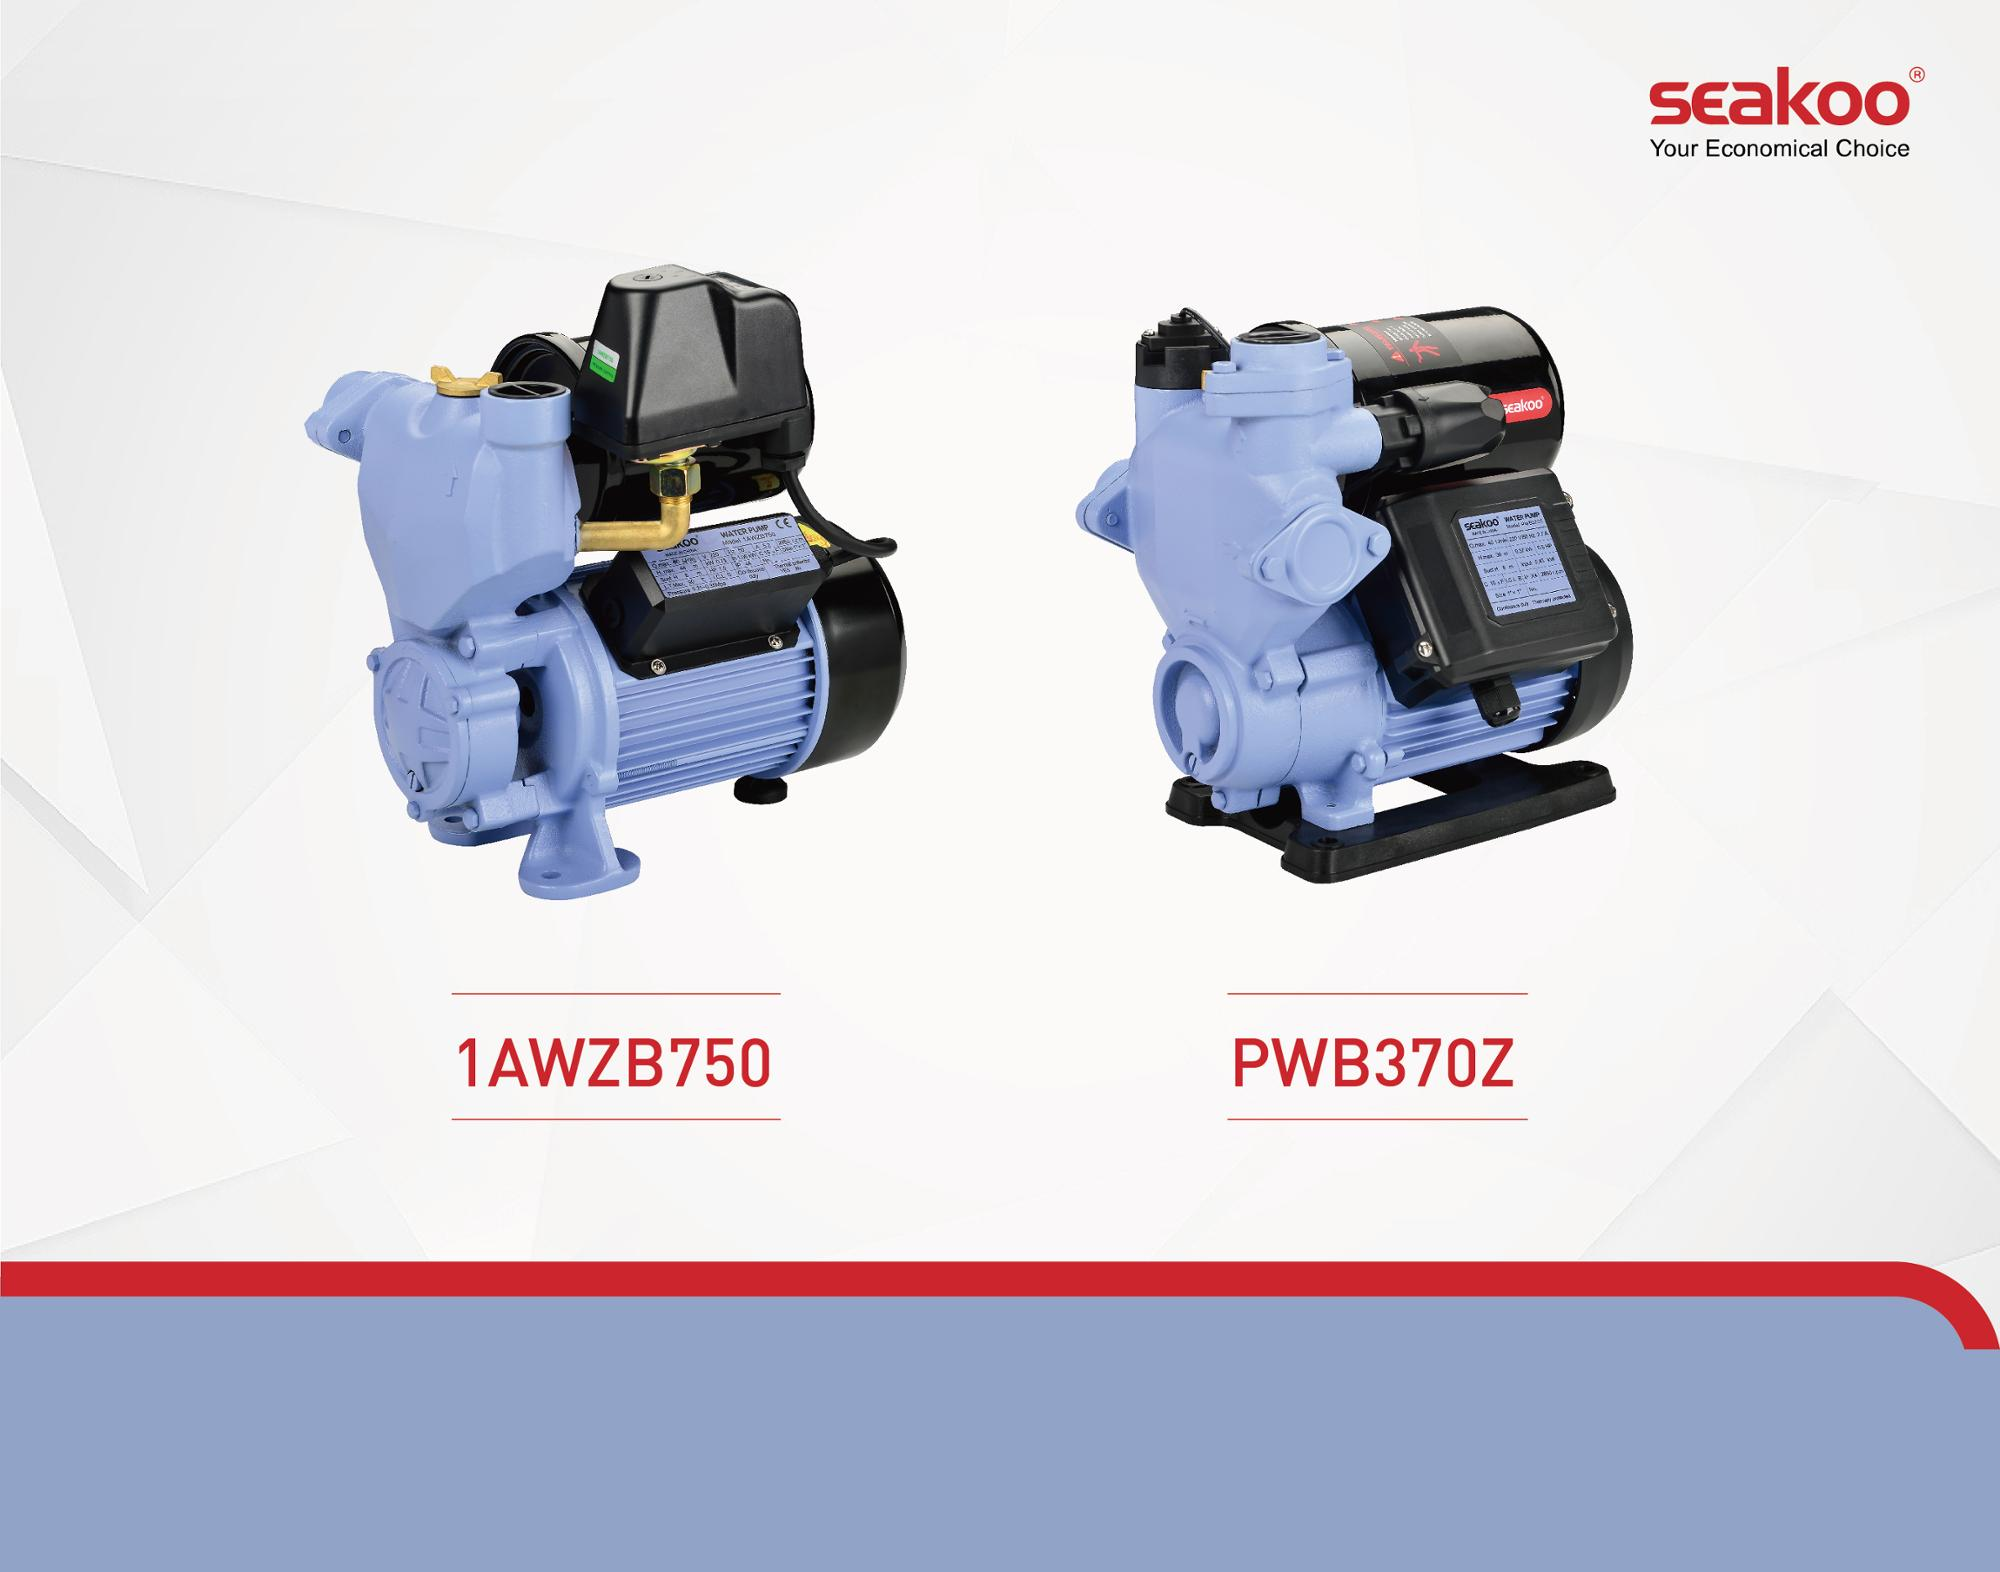 AWZB AUTOMATIC SELF-PRIMING PERIPHERAL PUMPS